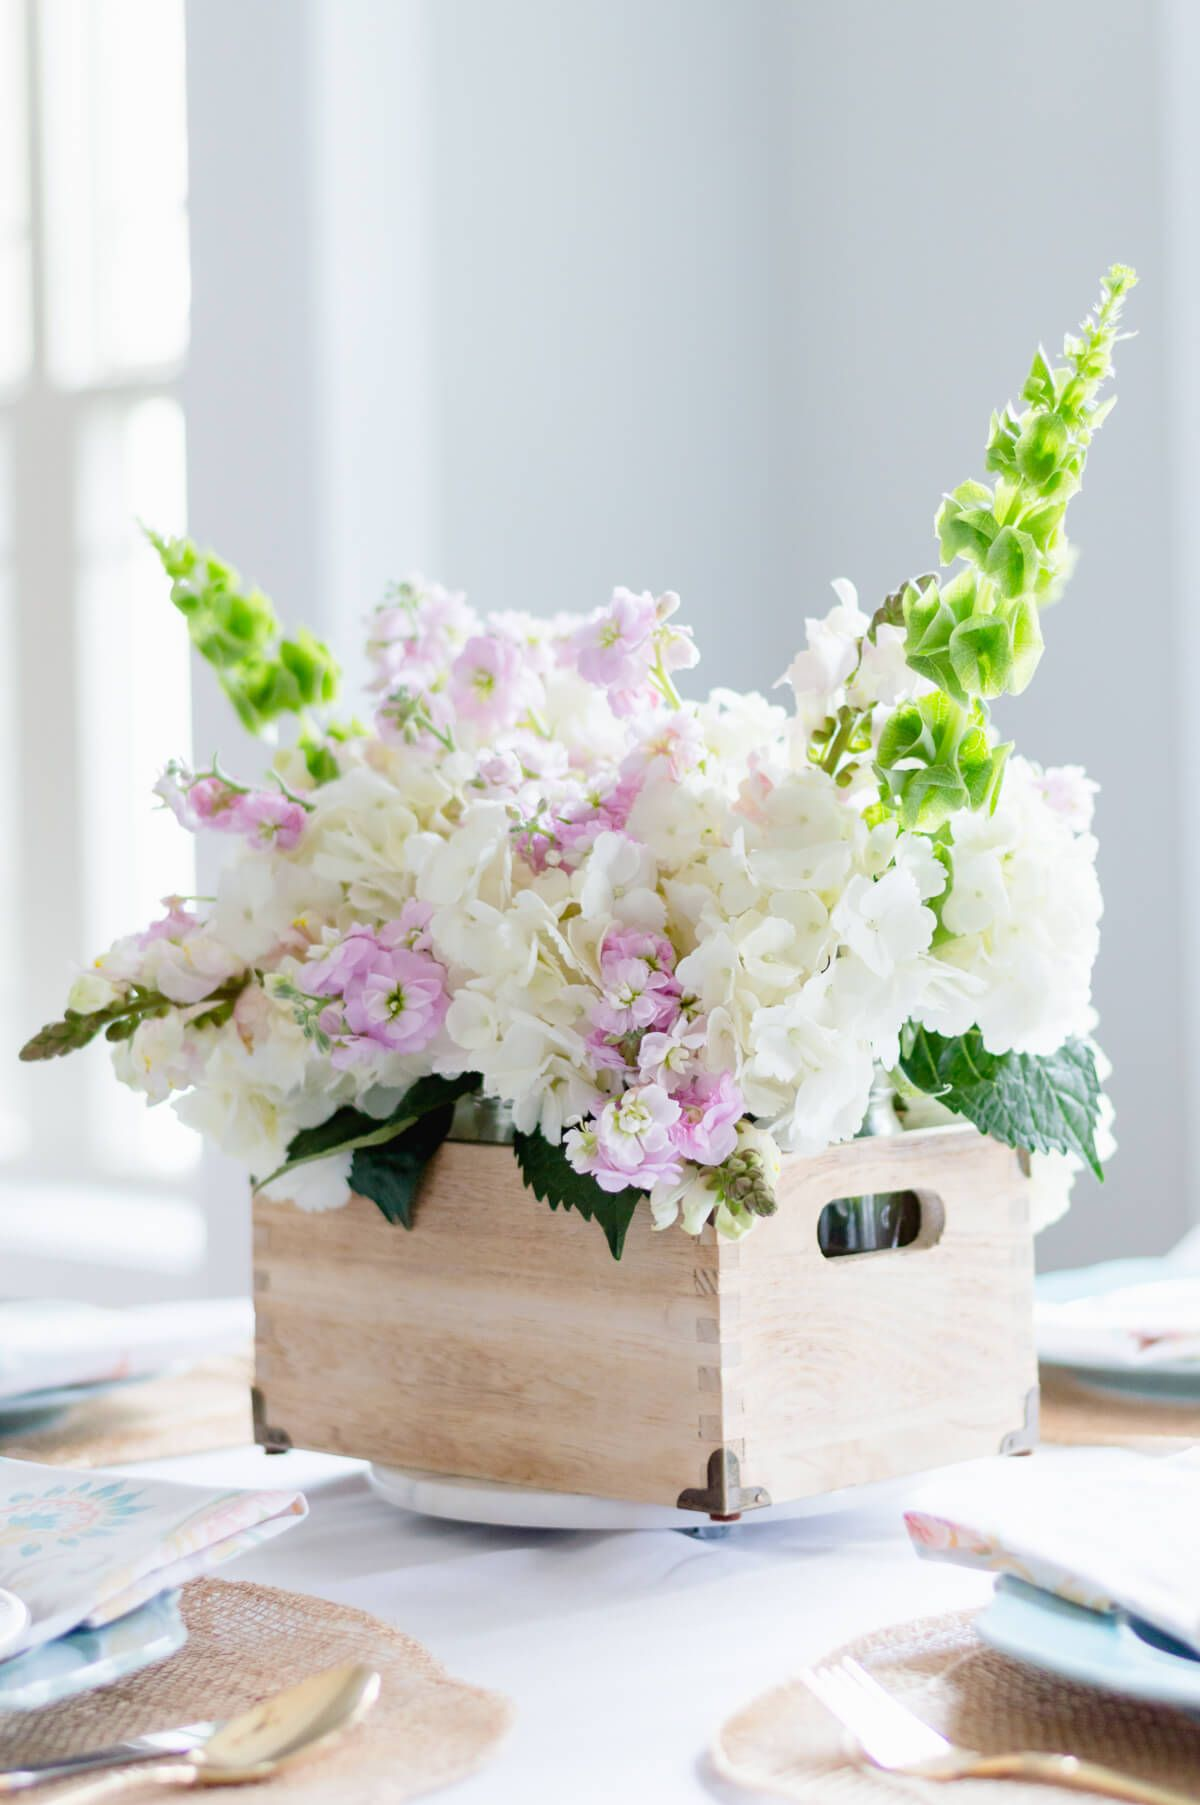 52 Easy Flower Arrangement Ideas Creative Diy Floral Displays